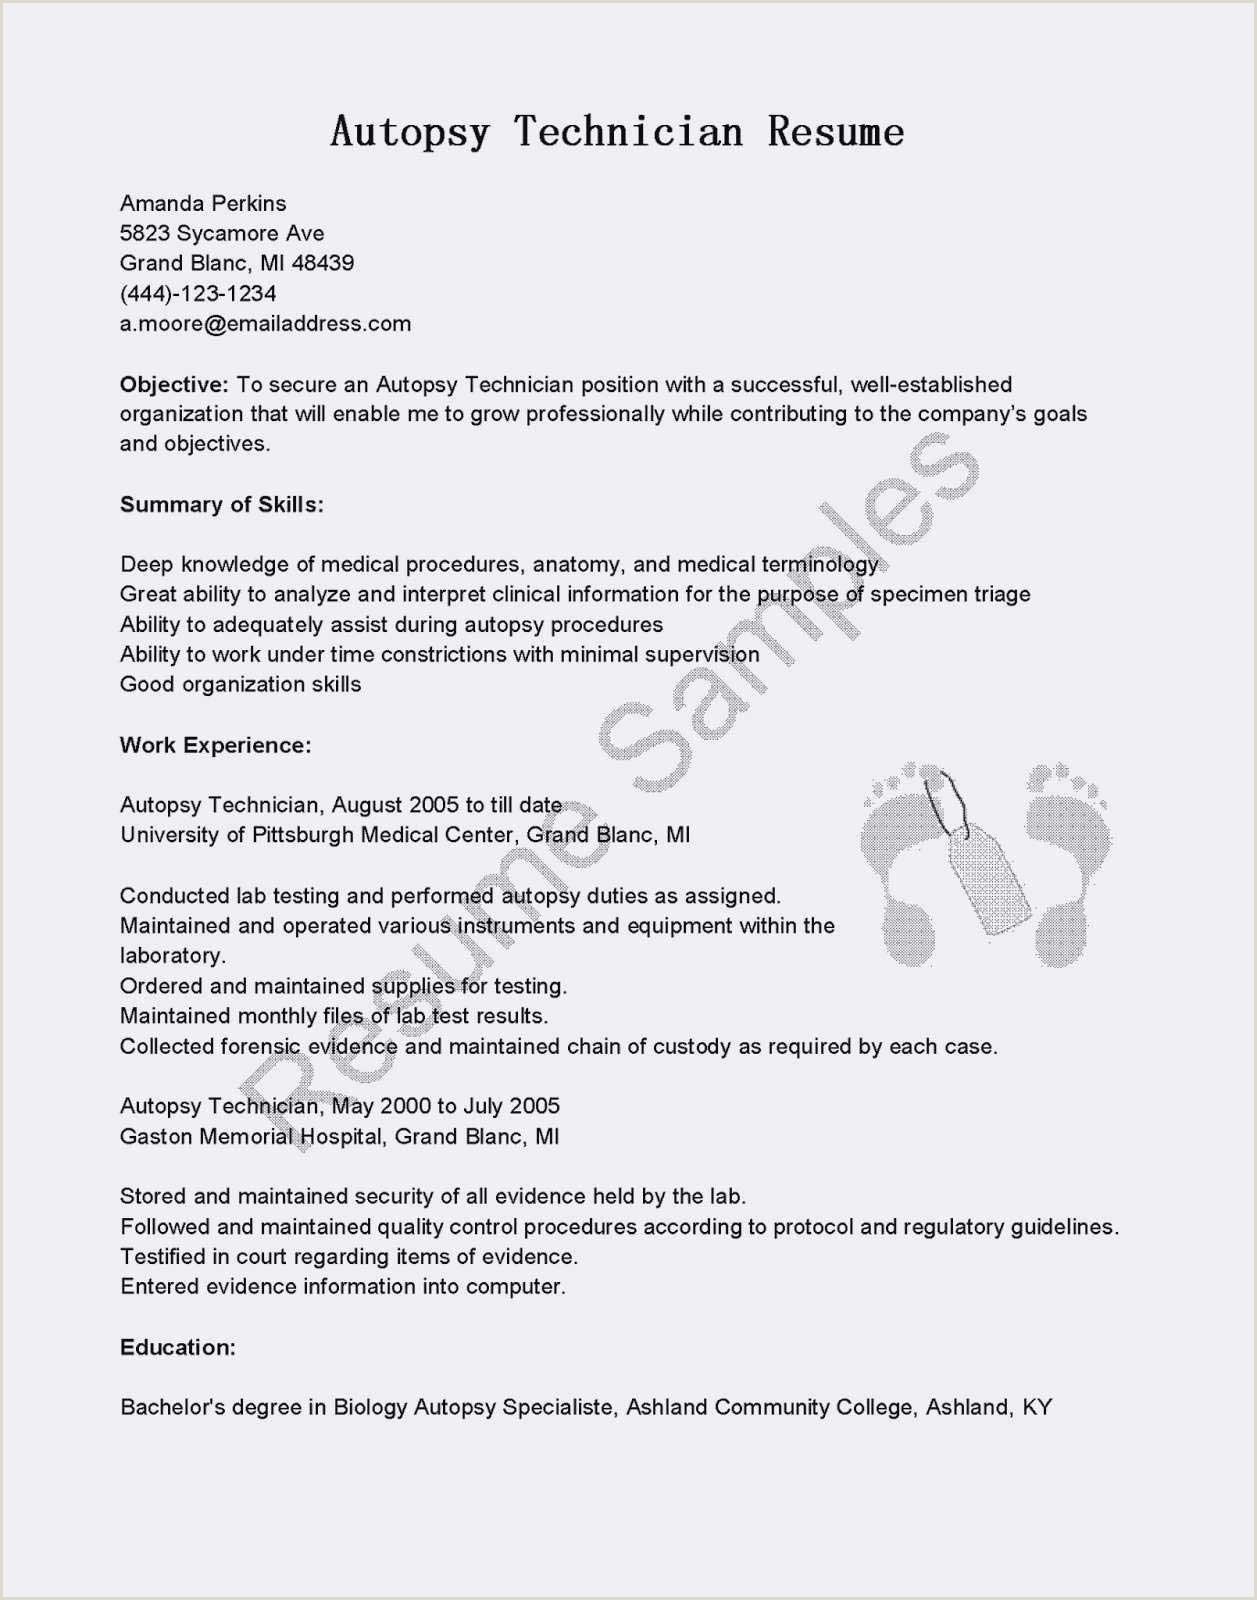 Exemple De Cv Debutant Emploi Job Elegant Cv Ide Exemple How Write A Resume for